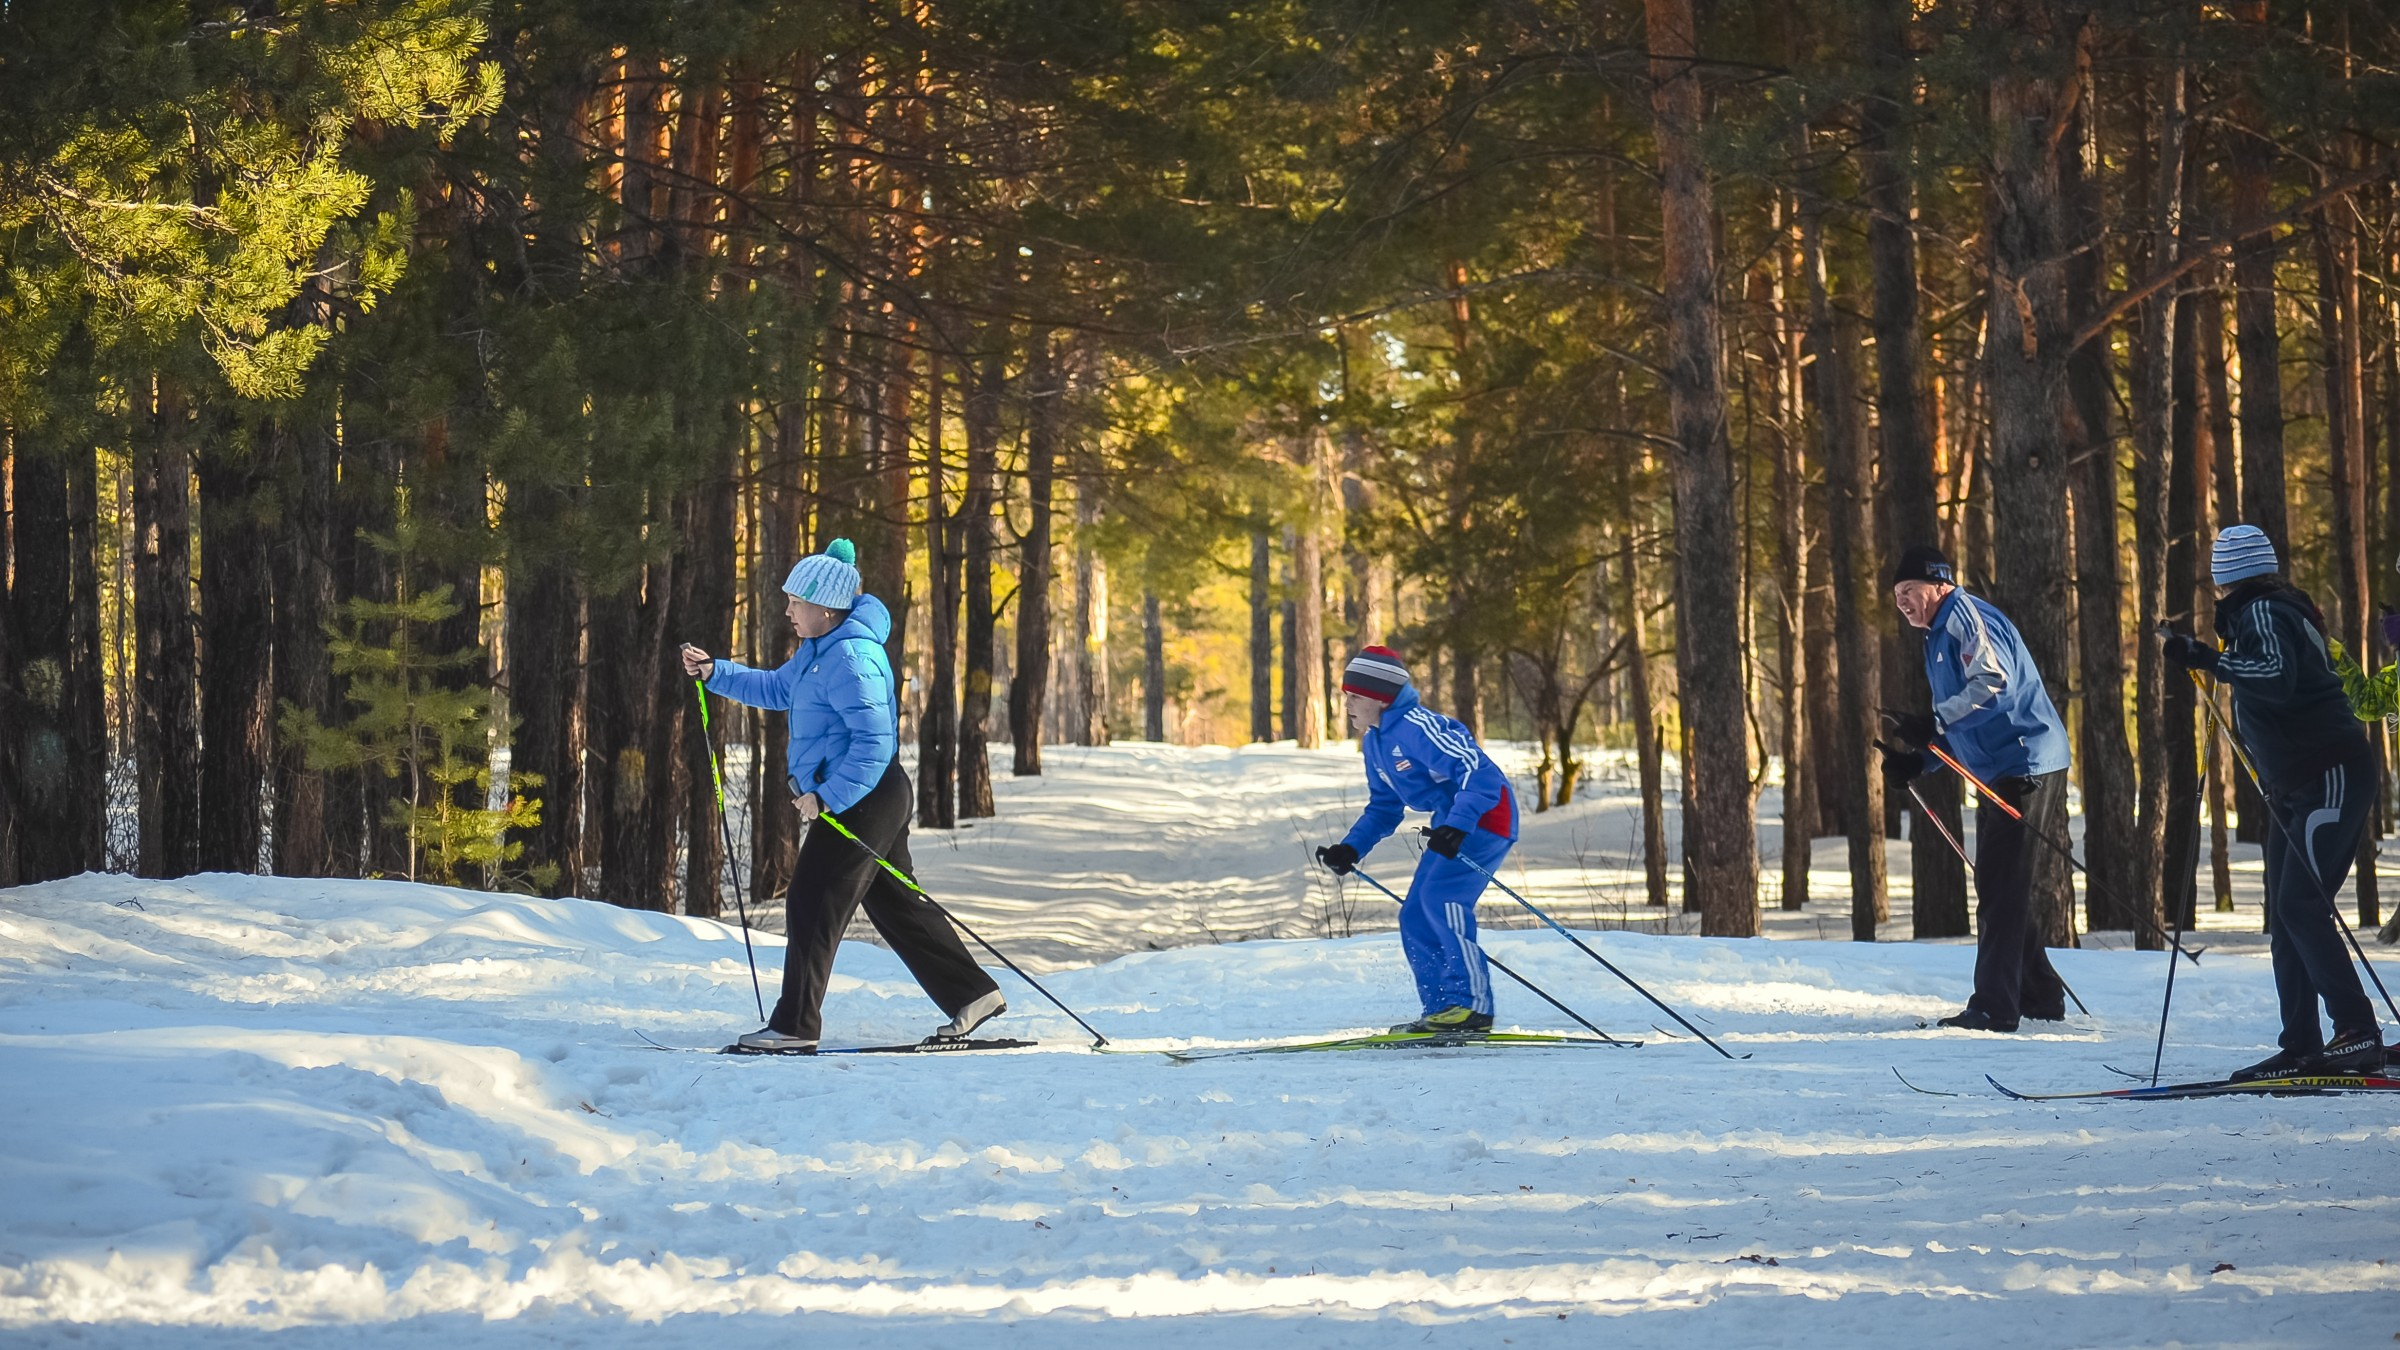 Family cross country skiing